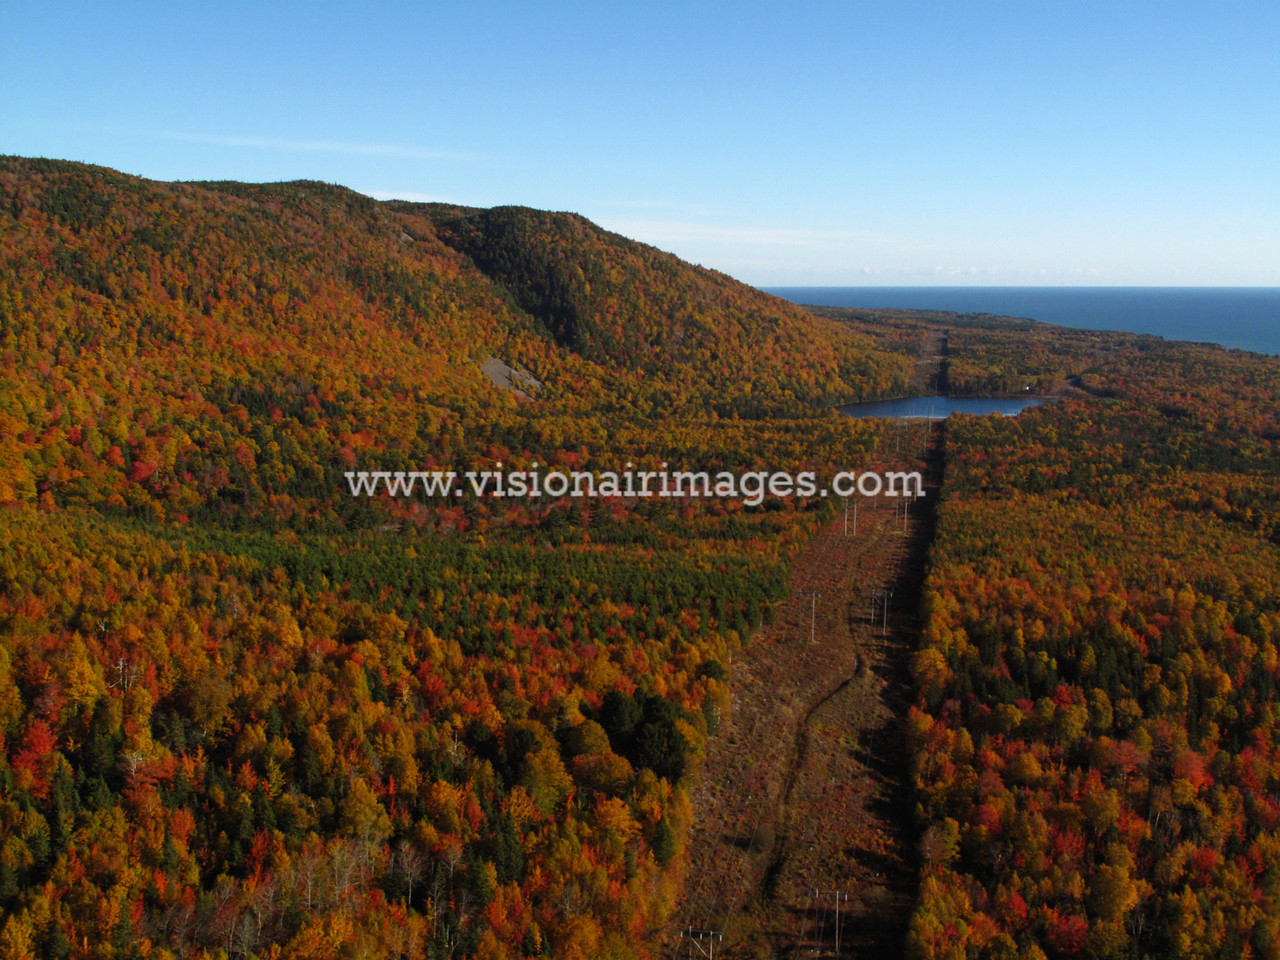 Fall Color Aerial, Powerline Cooridor to Wreck Cove, Cape Breton Island, Nova Scotia, Canada